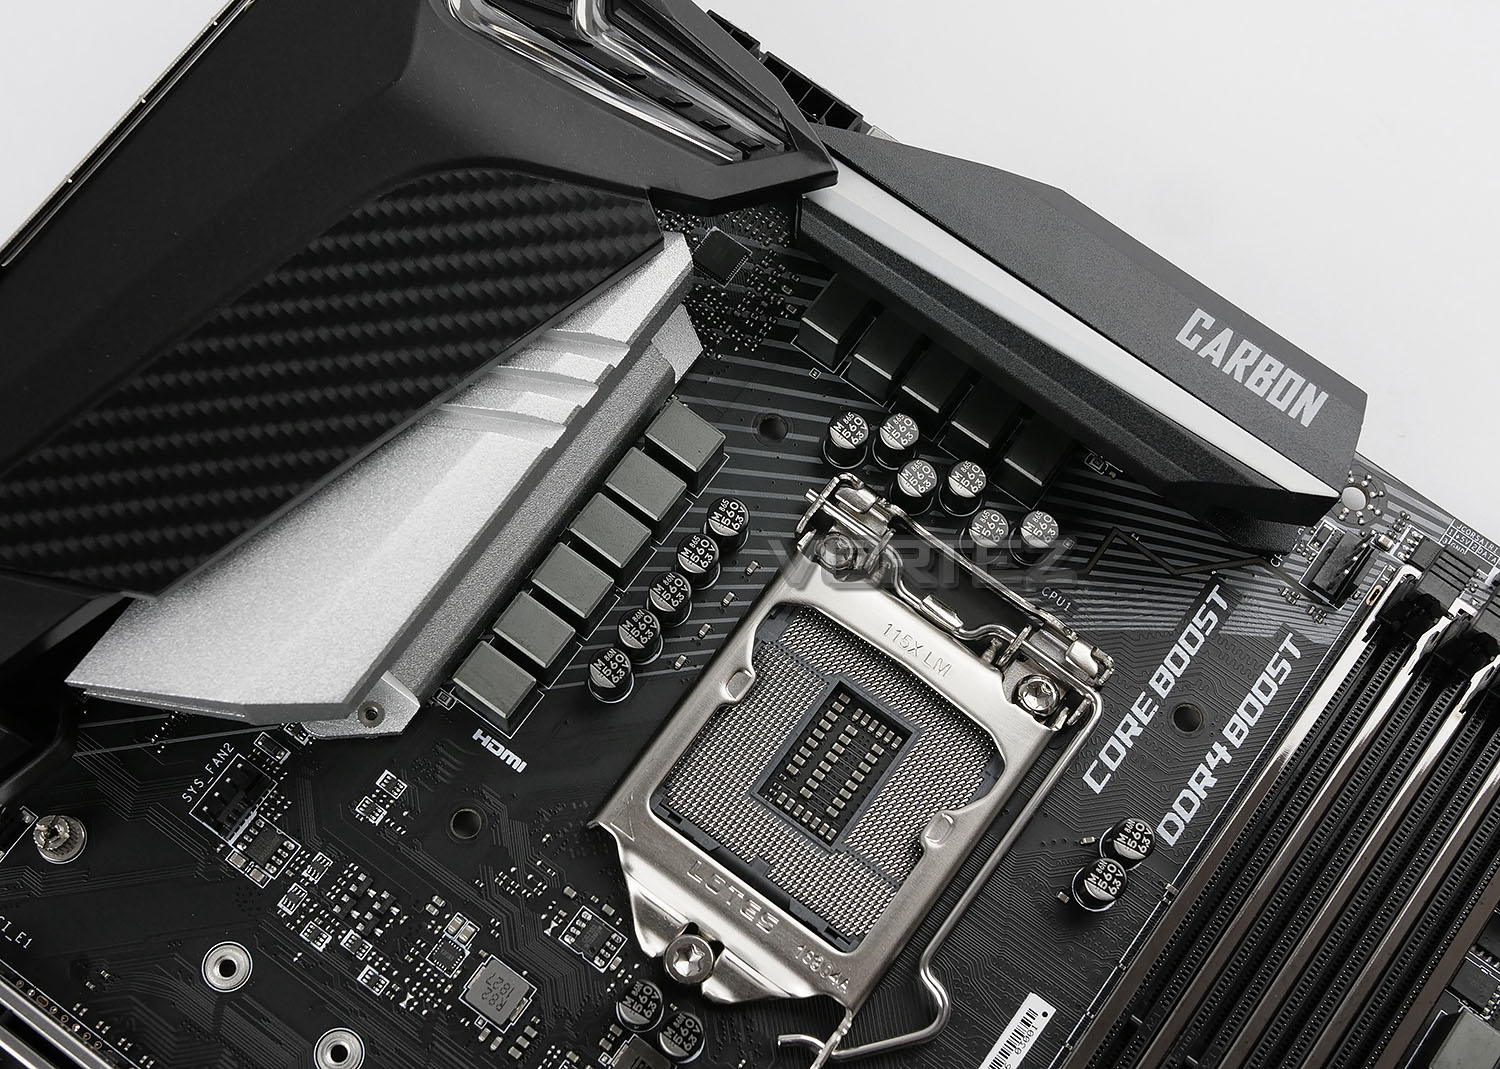 MSI MPG Z390 Gaming Pro Carbon Preview - Closer Look